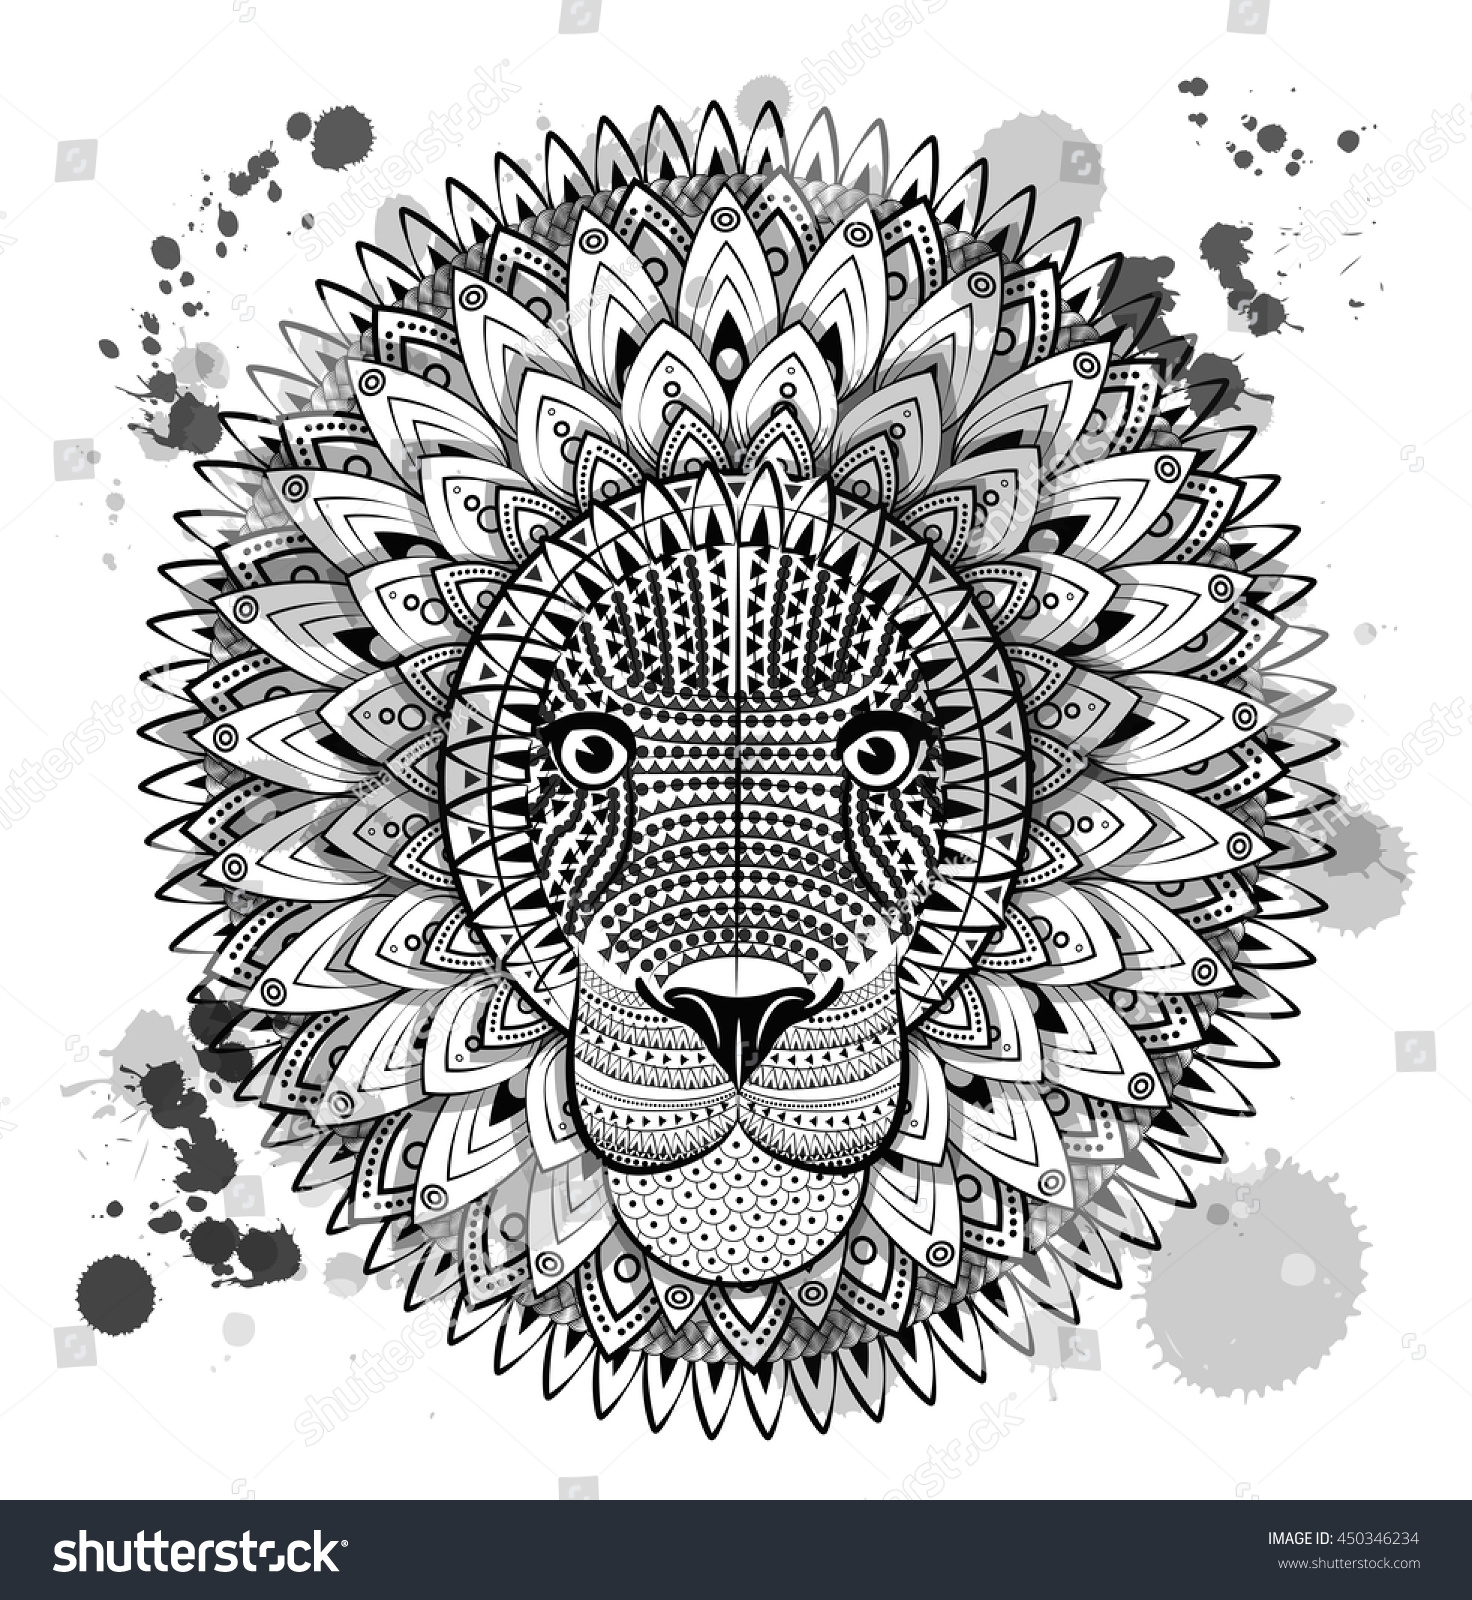 With Patterned Mane And Herbal Ethnic Ornaments Zentangle Stylized Cartoon Cat Leo Zodiac Hand Drawn Lion Sketch For Adult Antistress Coloring Page